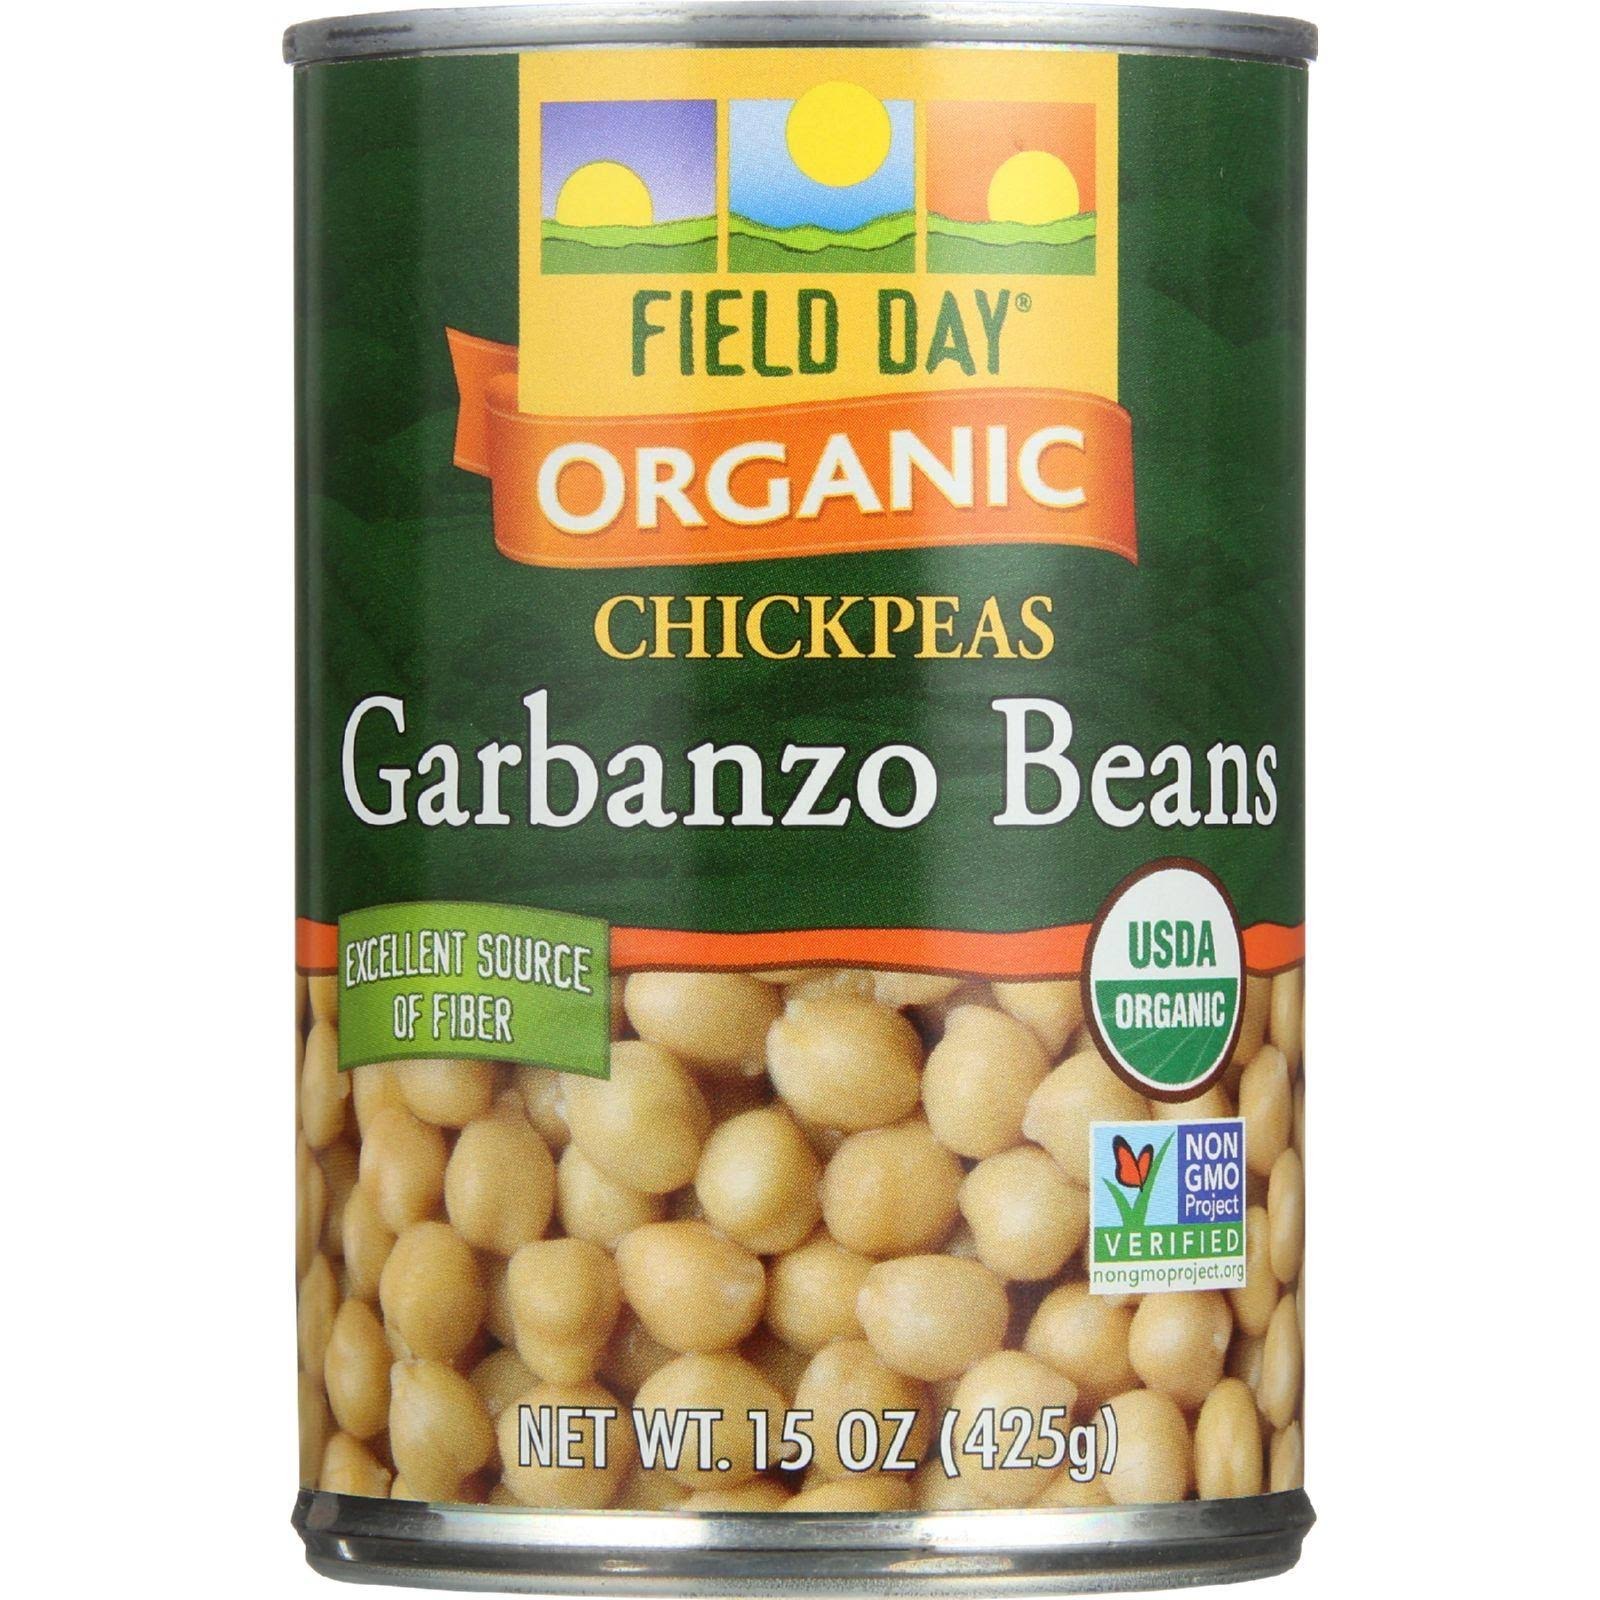 Field Day Organic Garbanzo Beans - 15 oz can